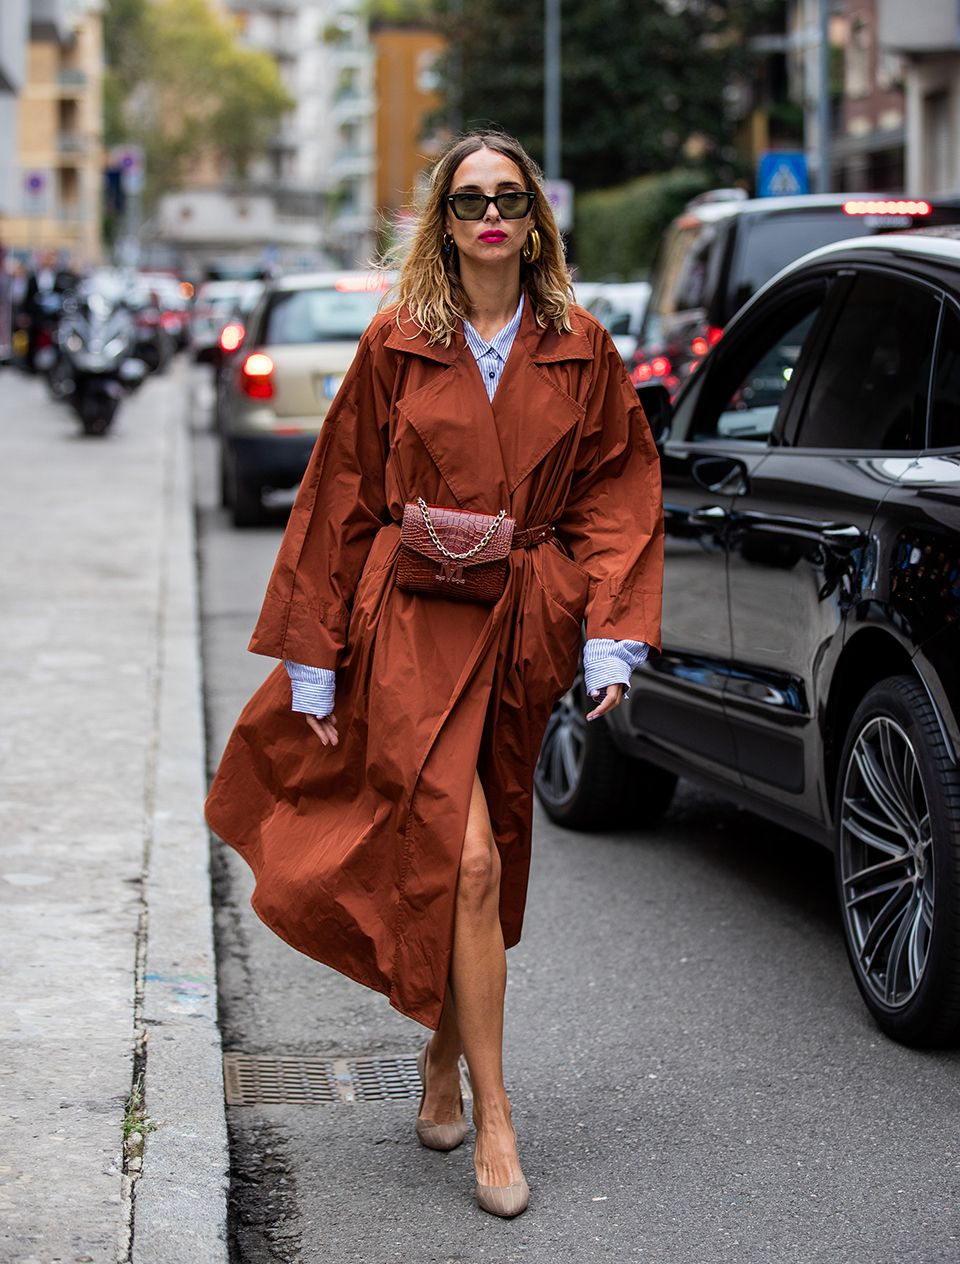 How to style a trench coat: swap a belt for a bum bag